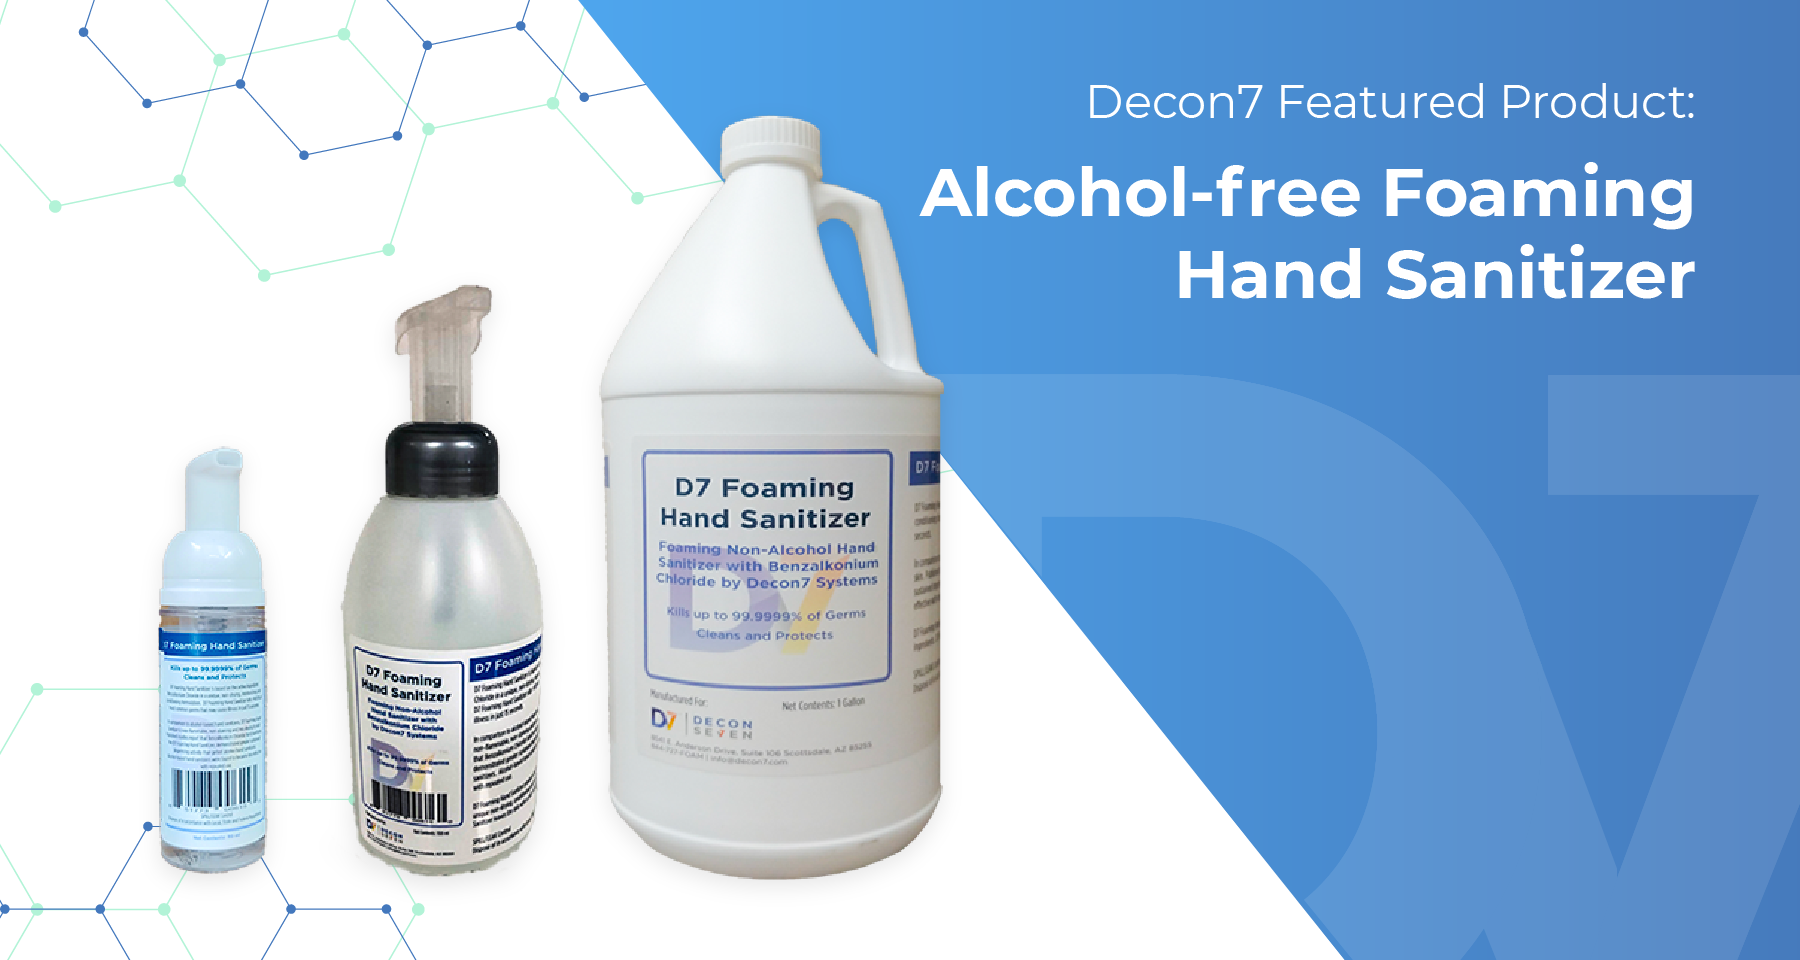 decon7 alcohol-free hand sanitizer